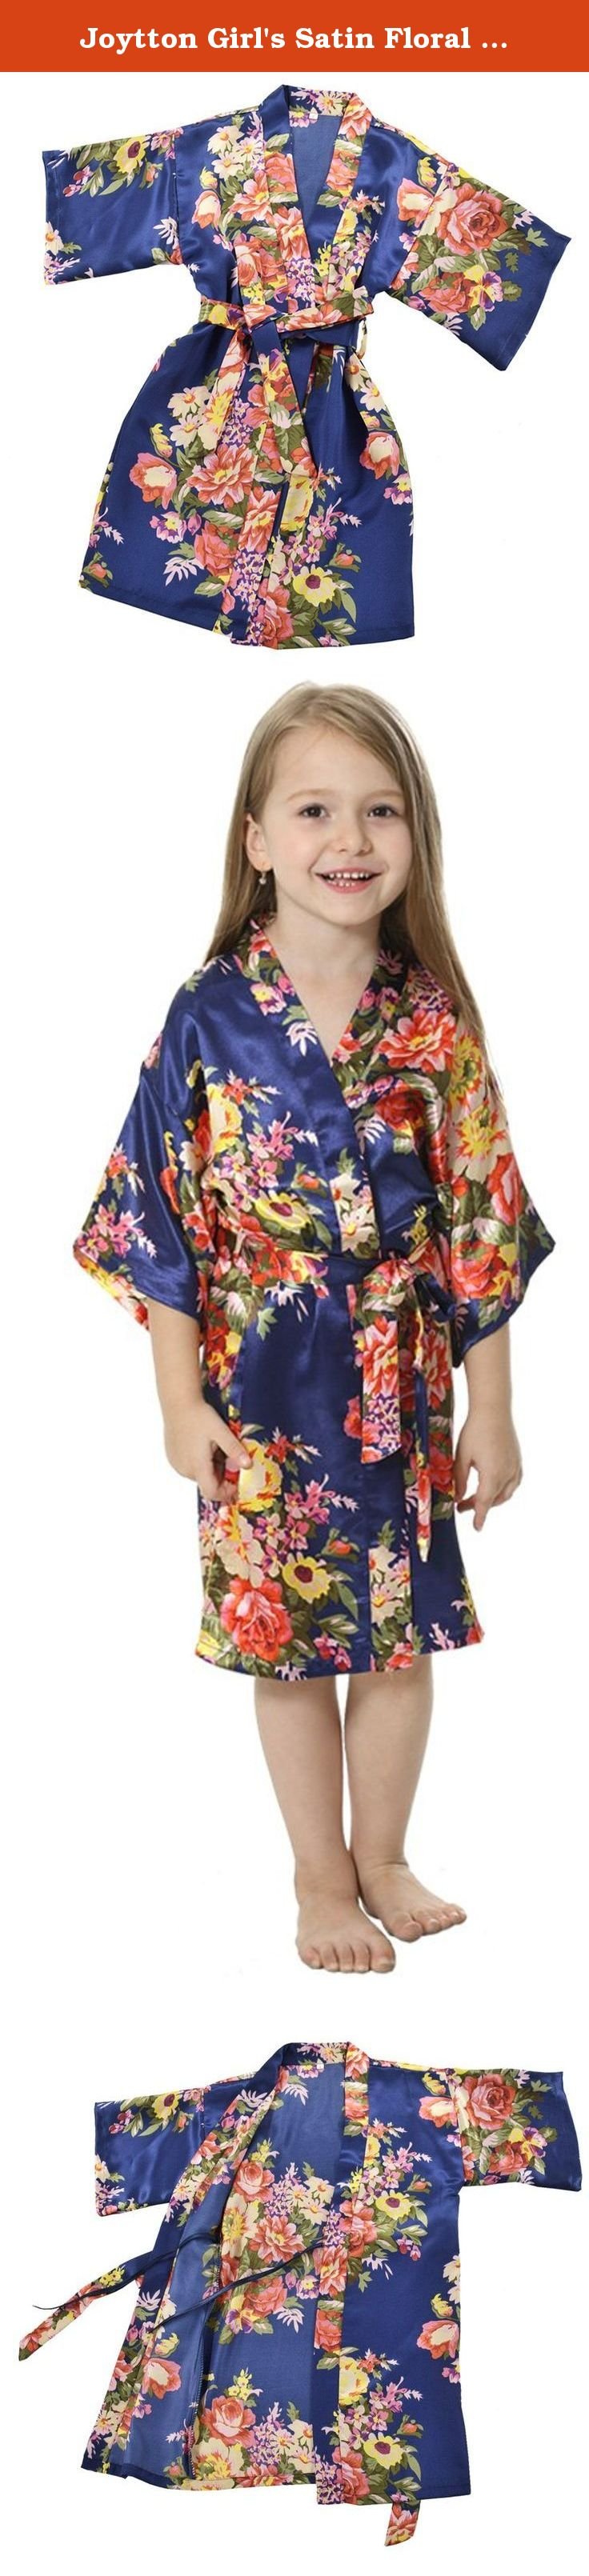 3127bd5d6c4 Joytton Girl s Satin Floral Kimono Bathrobe Flower Girl Robe (6